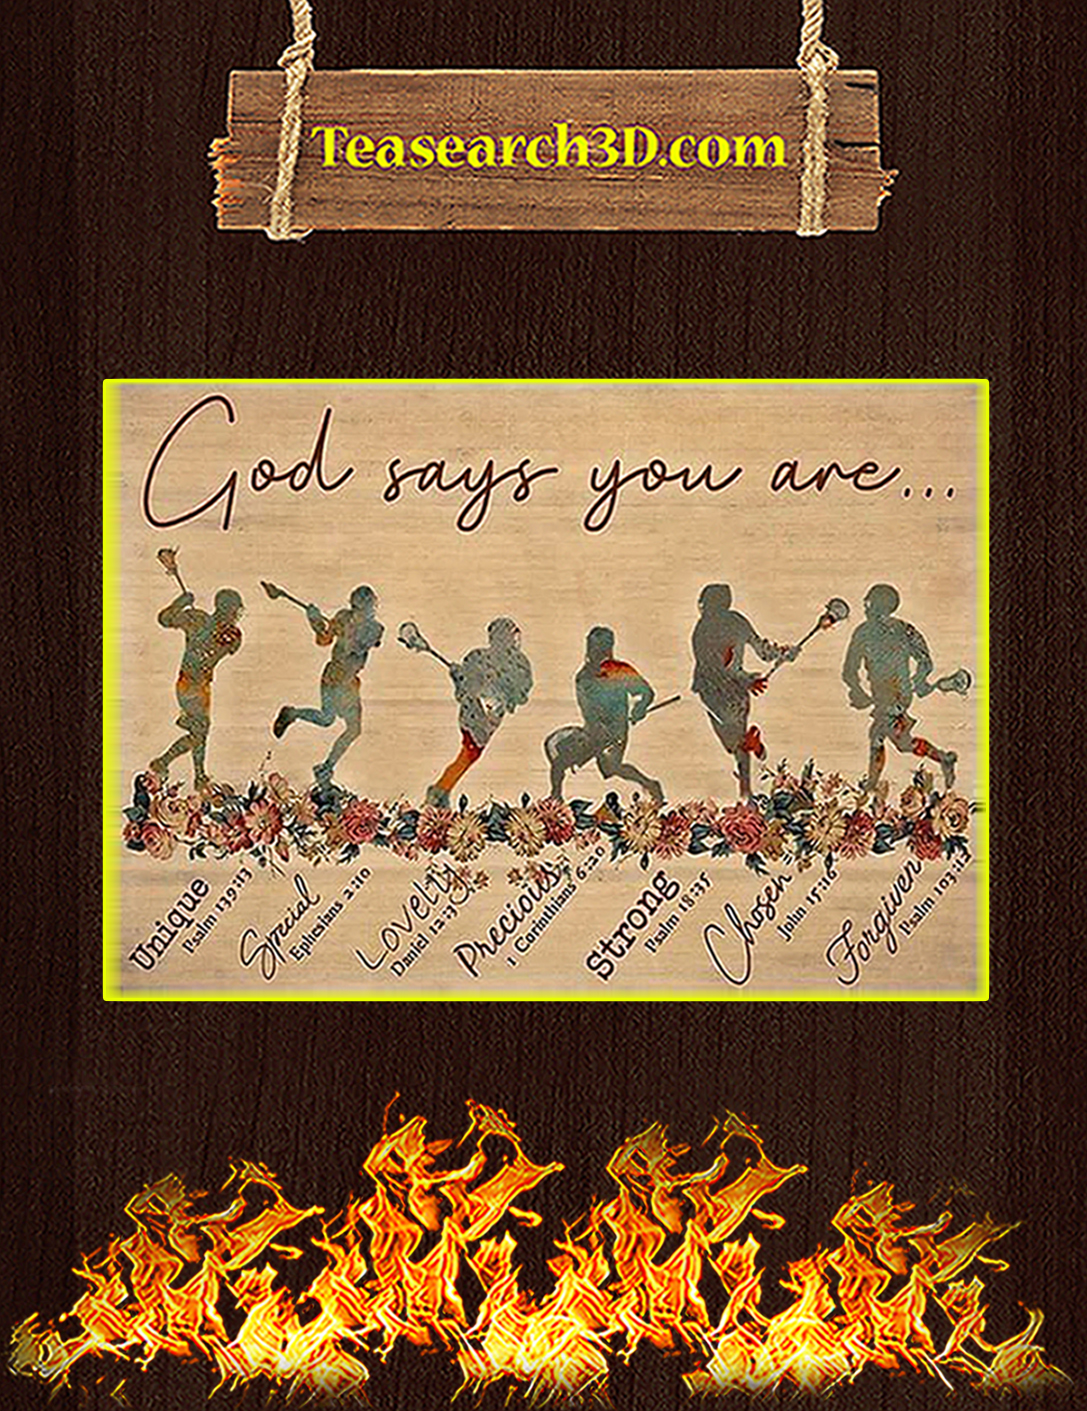 Lacrosse god says you are poster A2